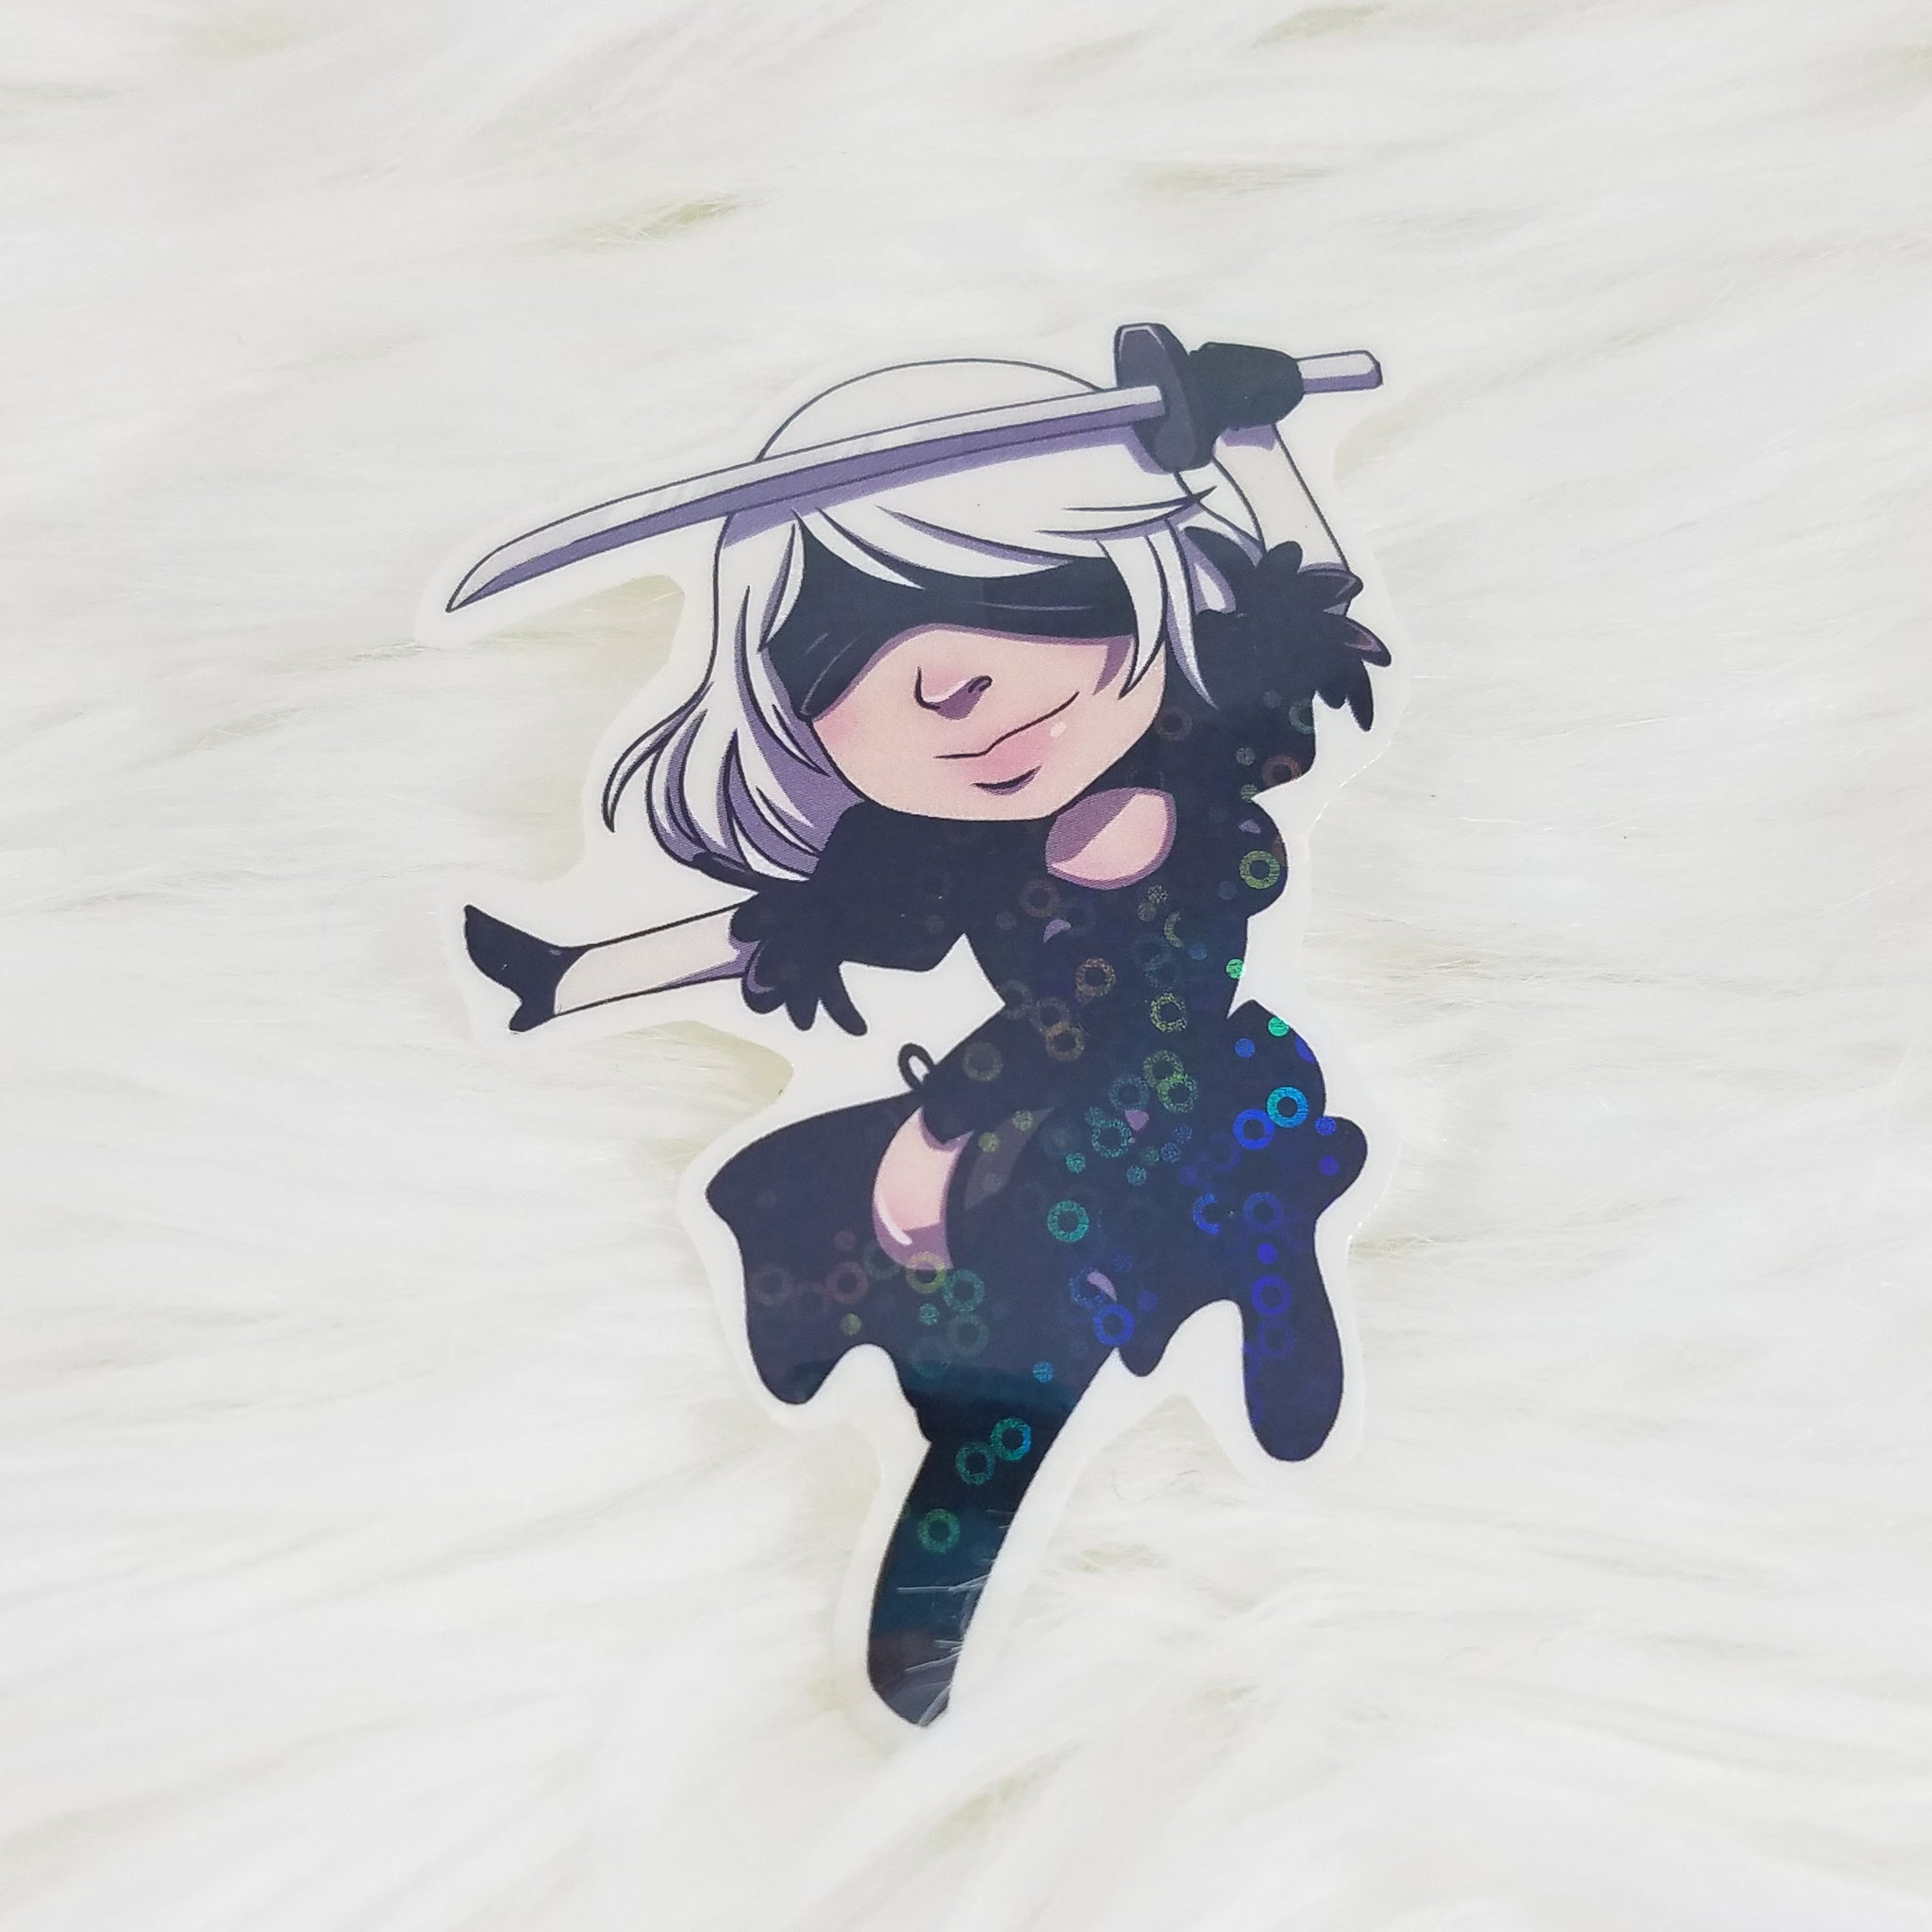 Nier Stickers